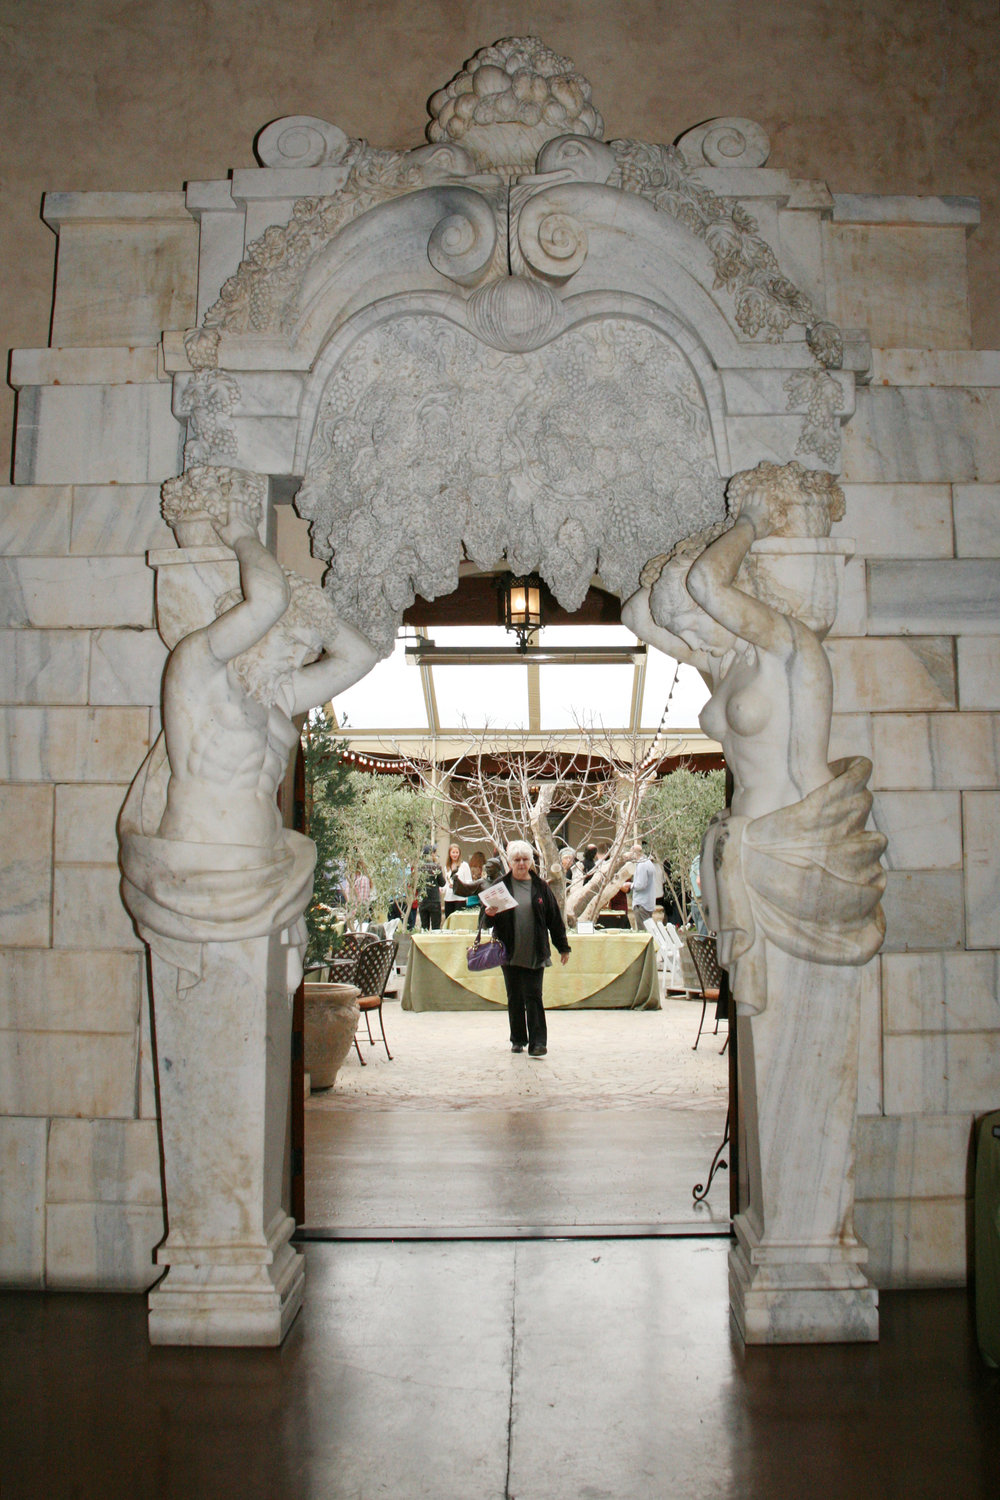 marble-scupture-barrel-room-entrance.jpg